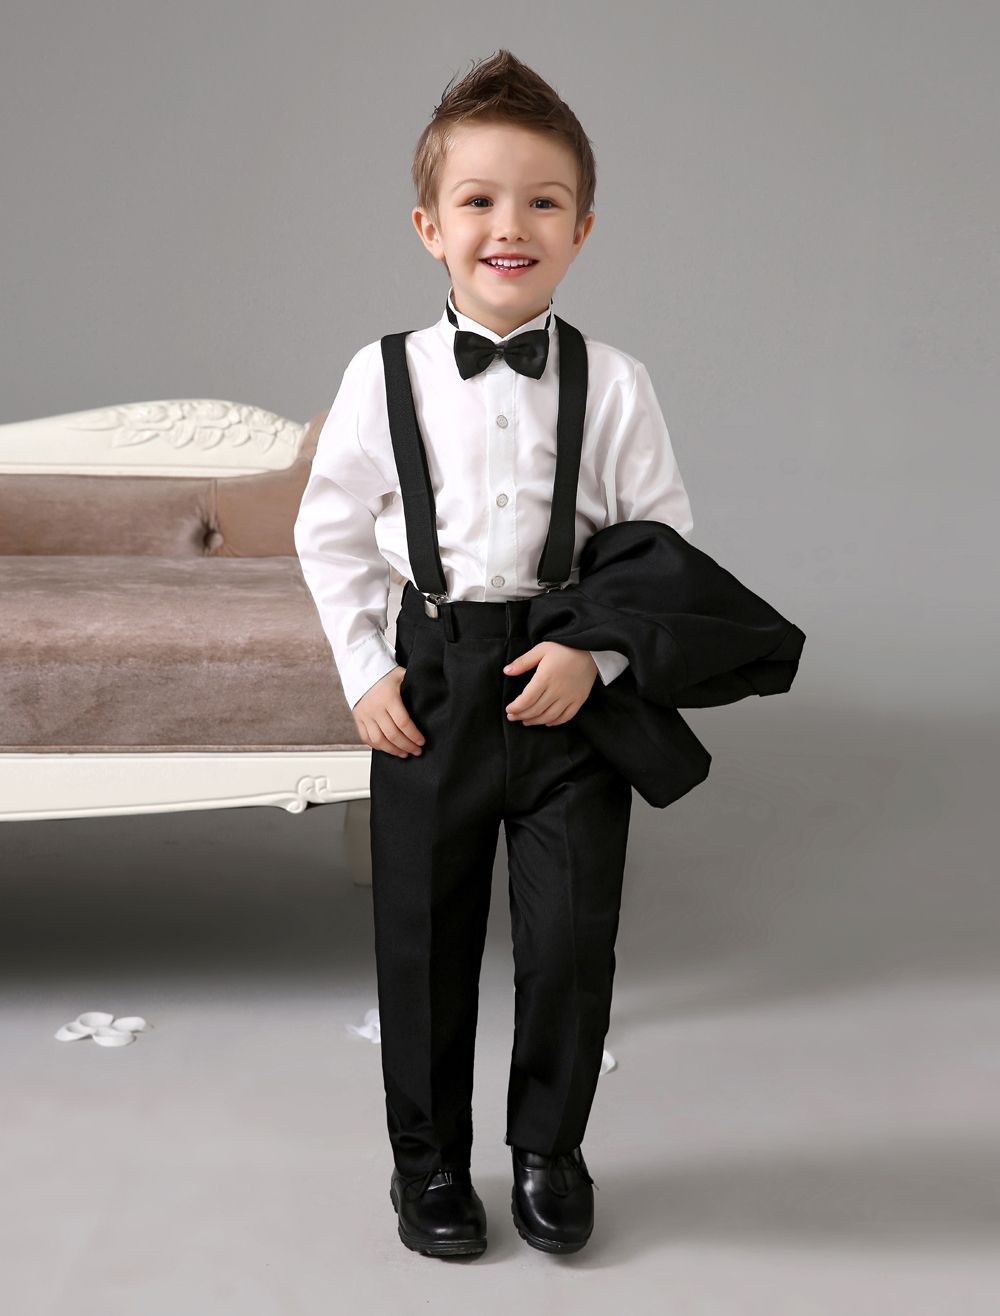 Four Pieces Luxurious Formal Black Boys Suits Ring Bearer Kids Tuxedo With Bow Tie Outfit China Mainland